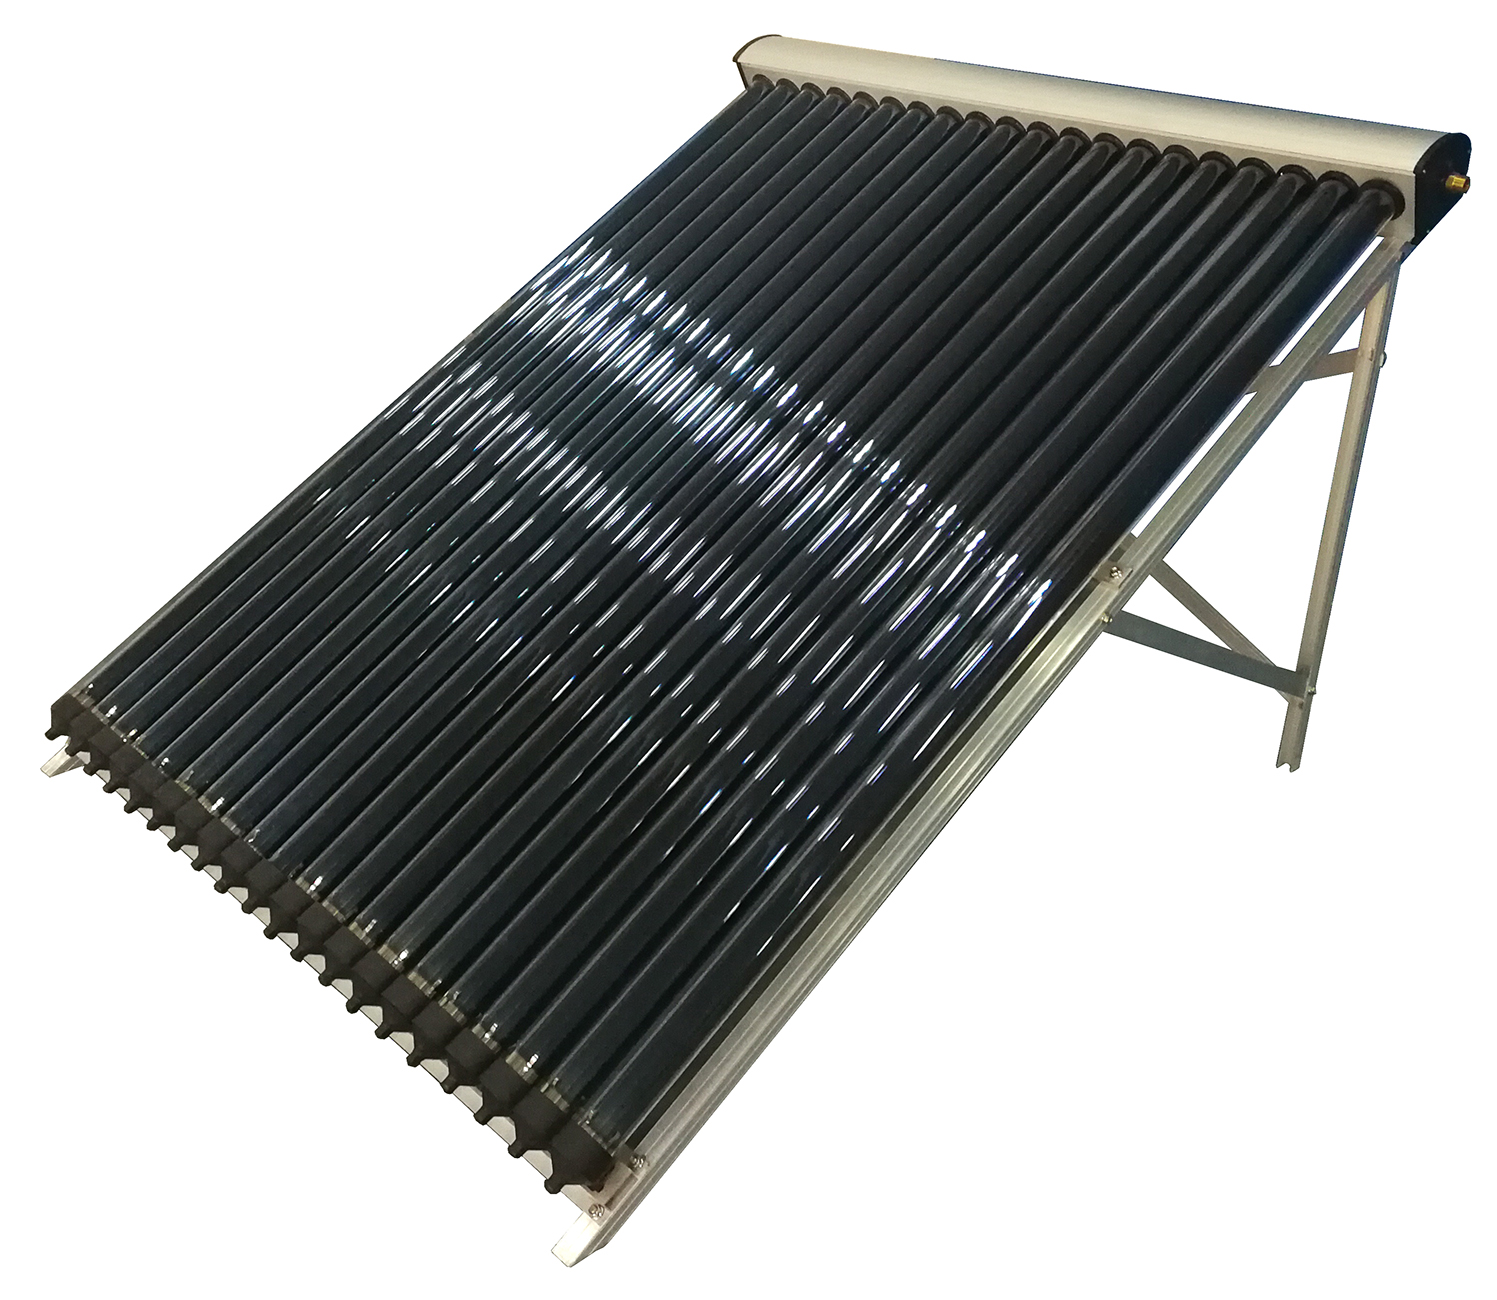 Heat Pipe Solar Water Heater U Pipe Type collector Pressurized Collector for split hot water system